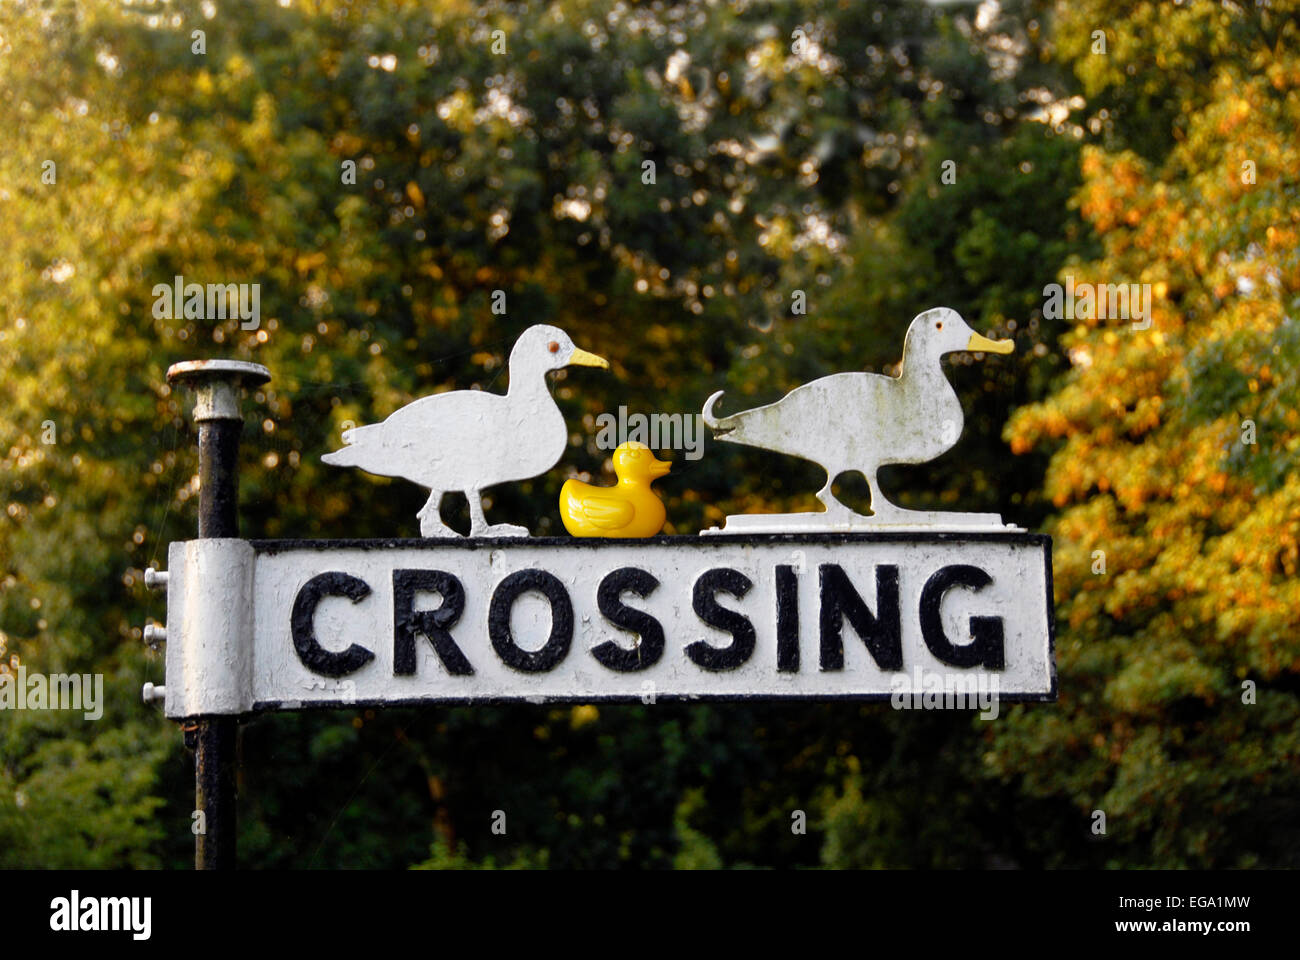 Novelty sign: Ducks Crossing - Stock Image